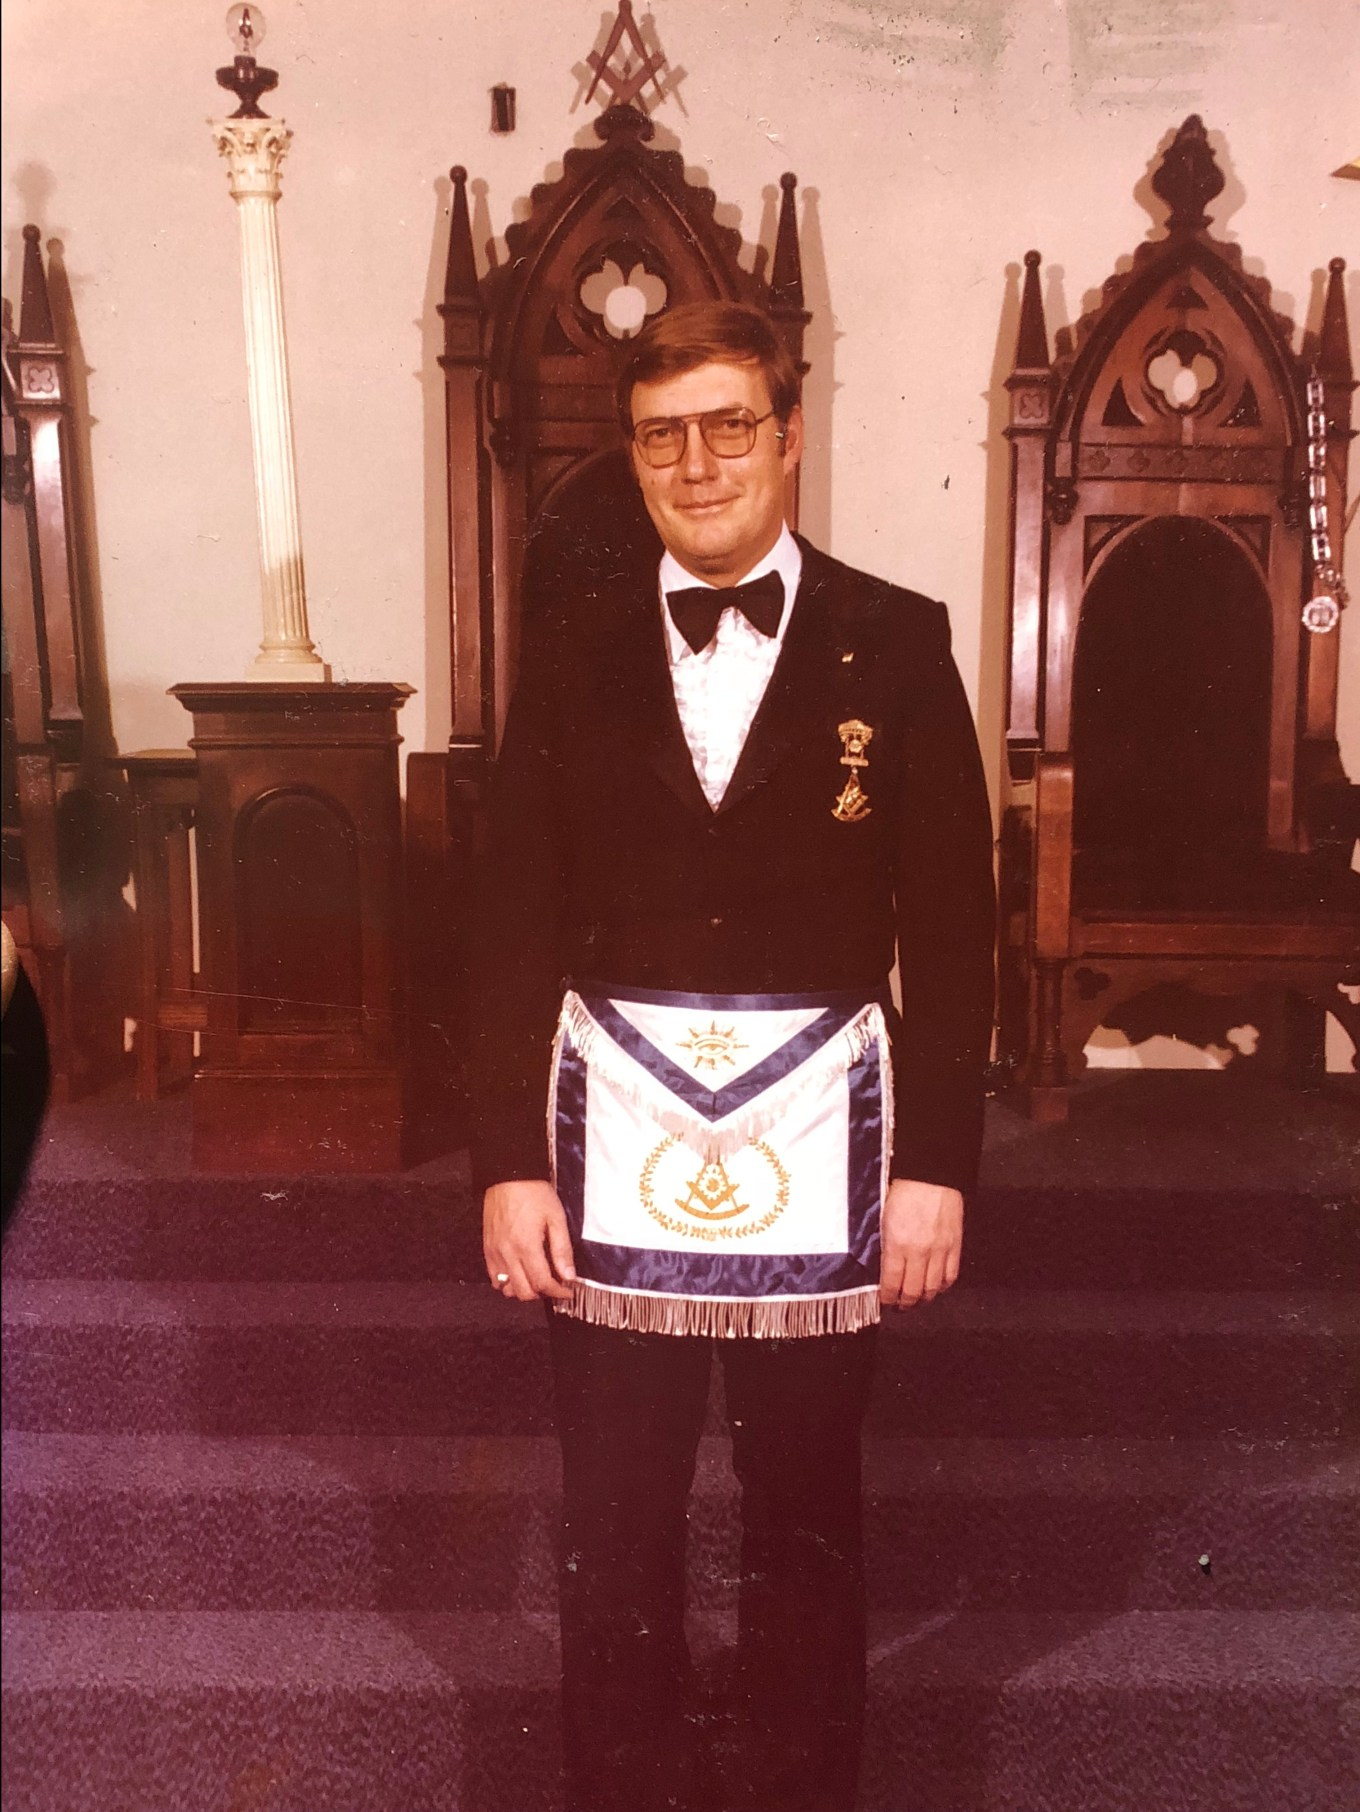 Walter Graham in full Masonic regalia, Burlington MA